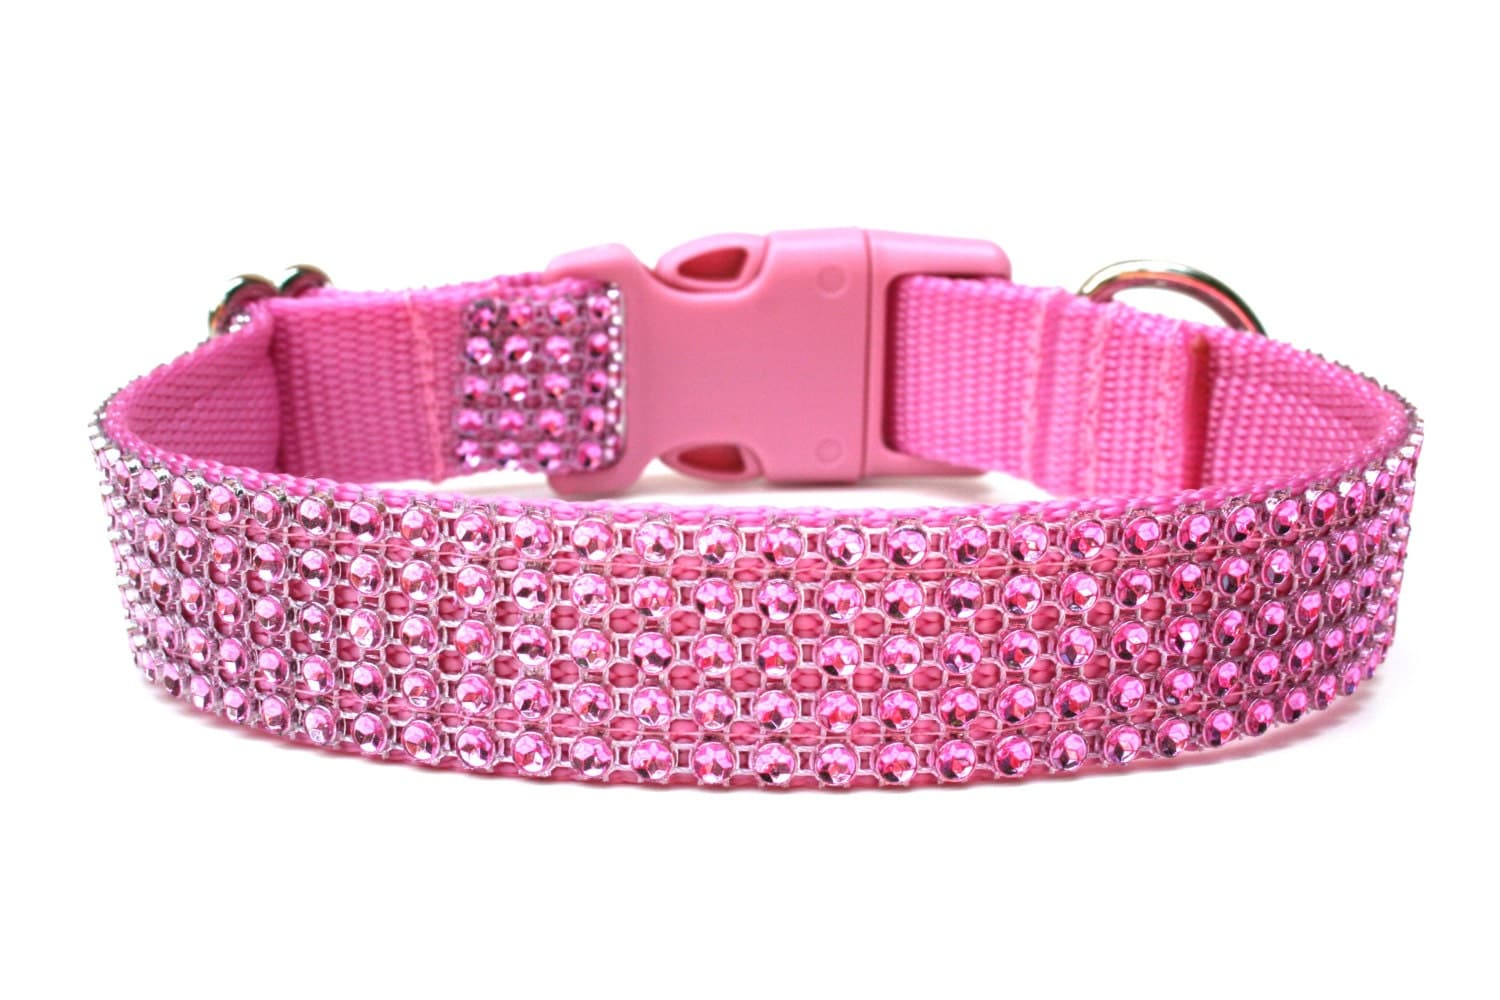 Pink Rhinestone Dog Collar 1 Pink Dog Collar - photo#47